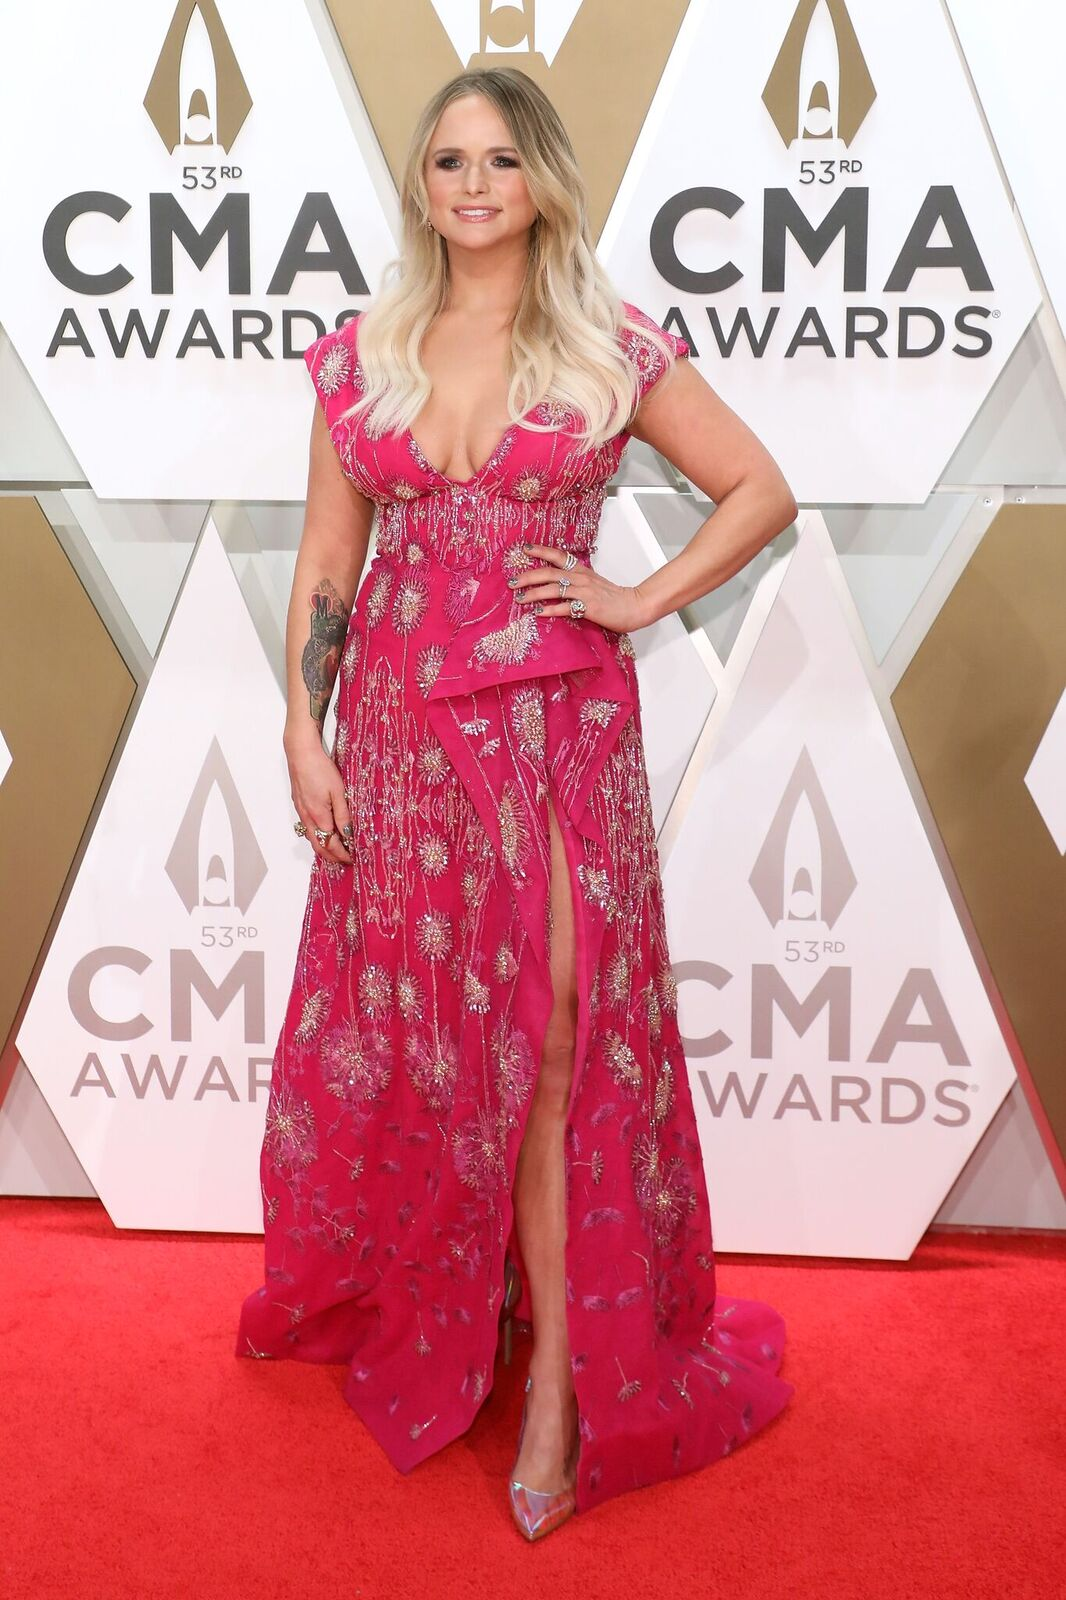 Miranda Lambert at the 53rd annual CMA Awards at Bridgestone Arena on November 13, 2019. | Photo: Getty Images